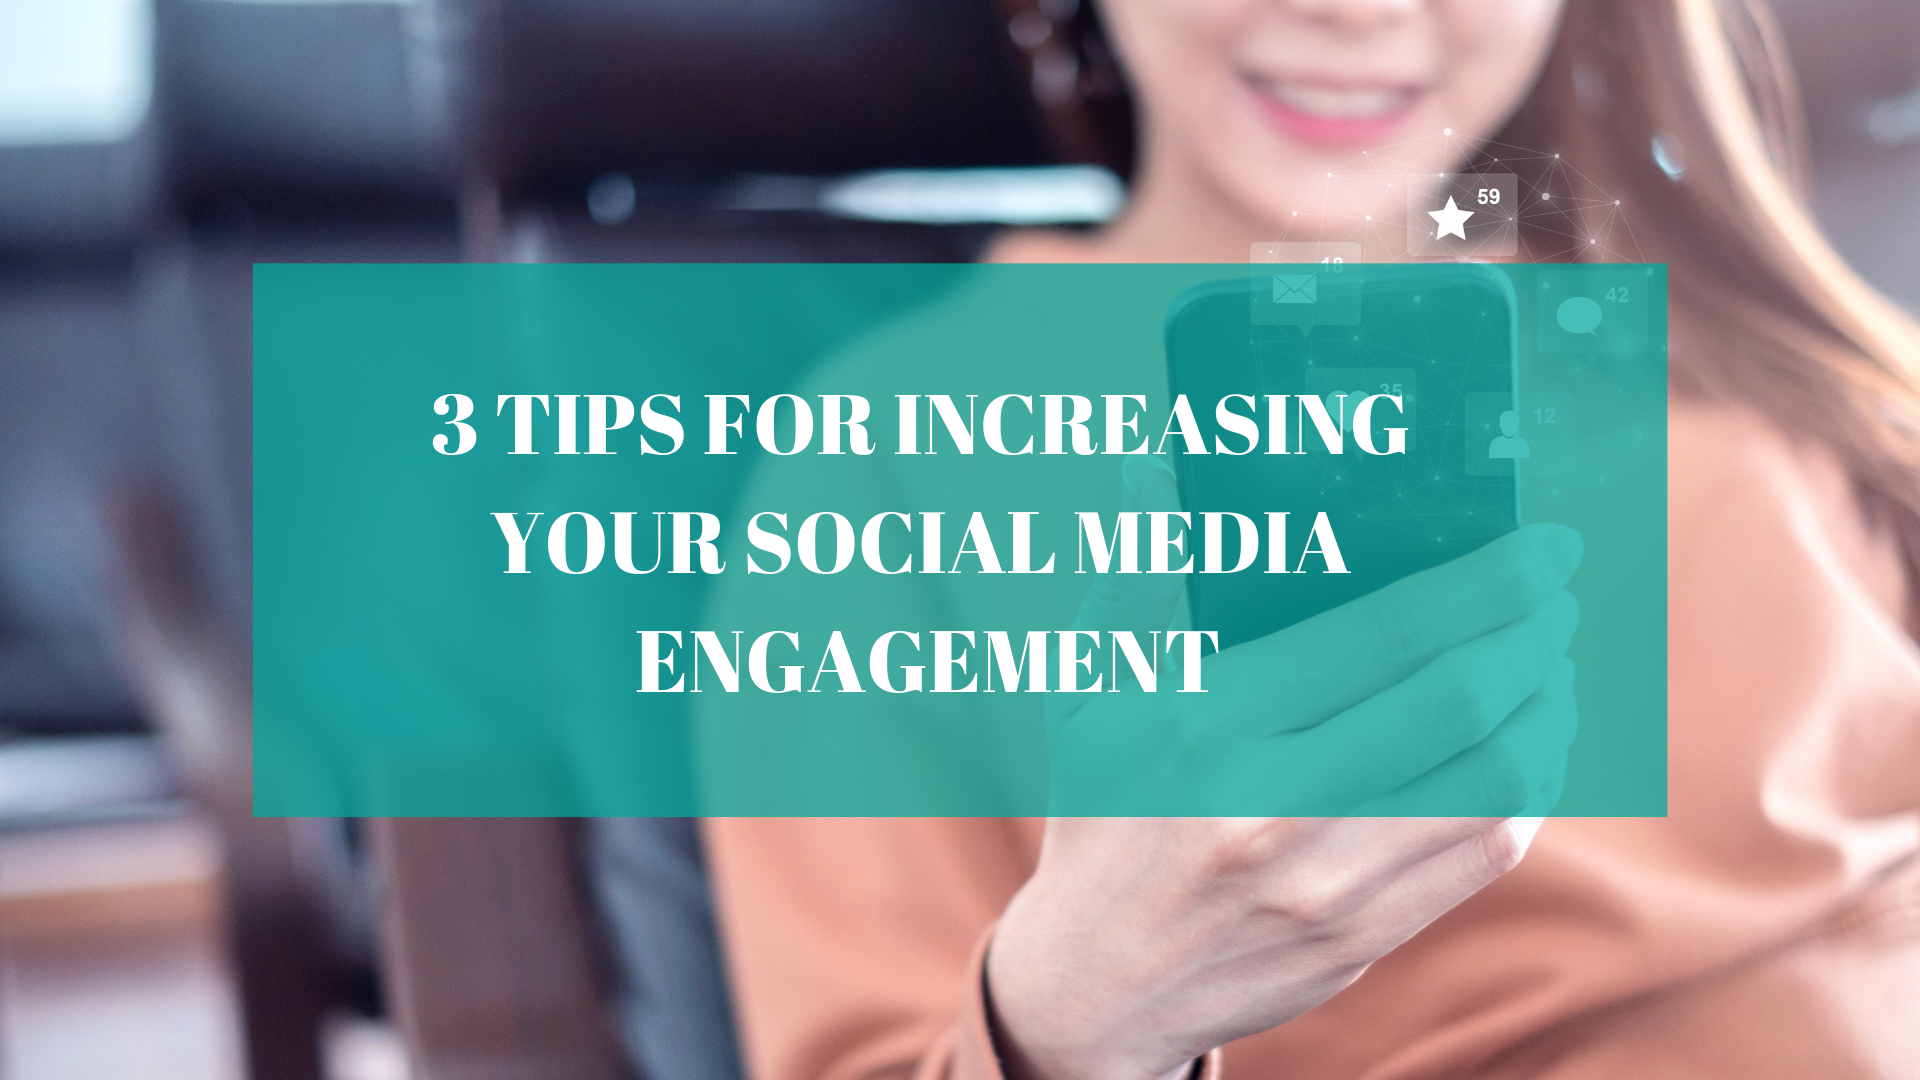 Three Simple Tips for Increasing Your Social Media Engagement That You Can Start Today